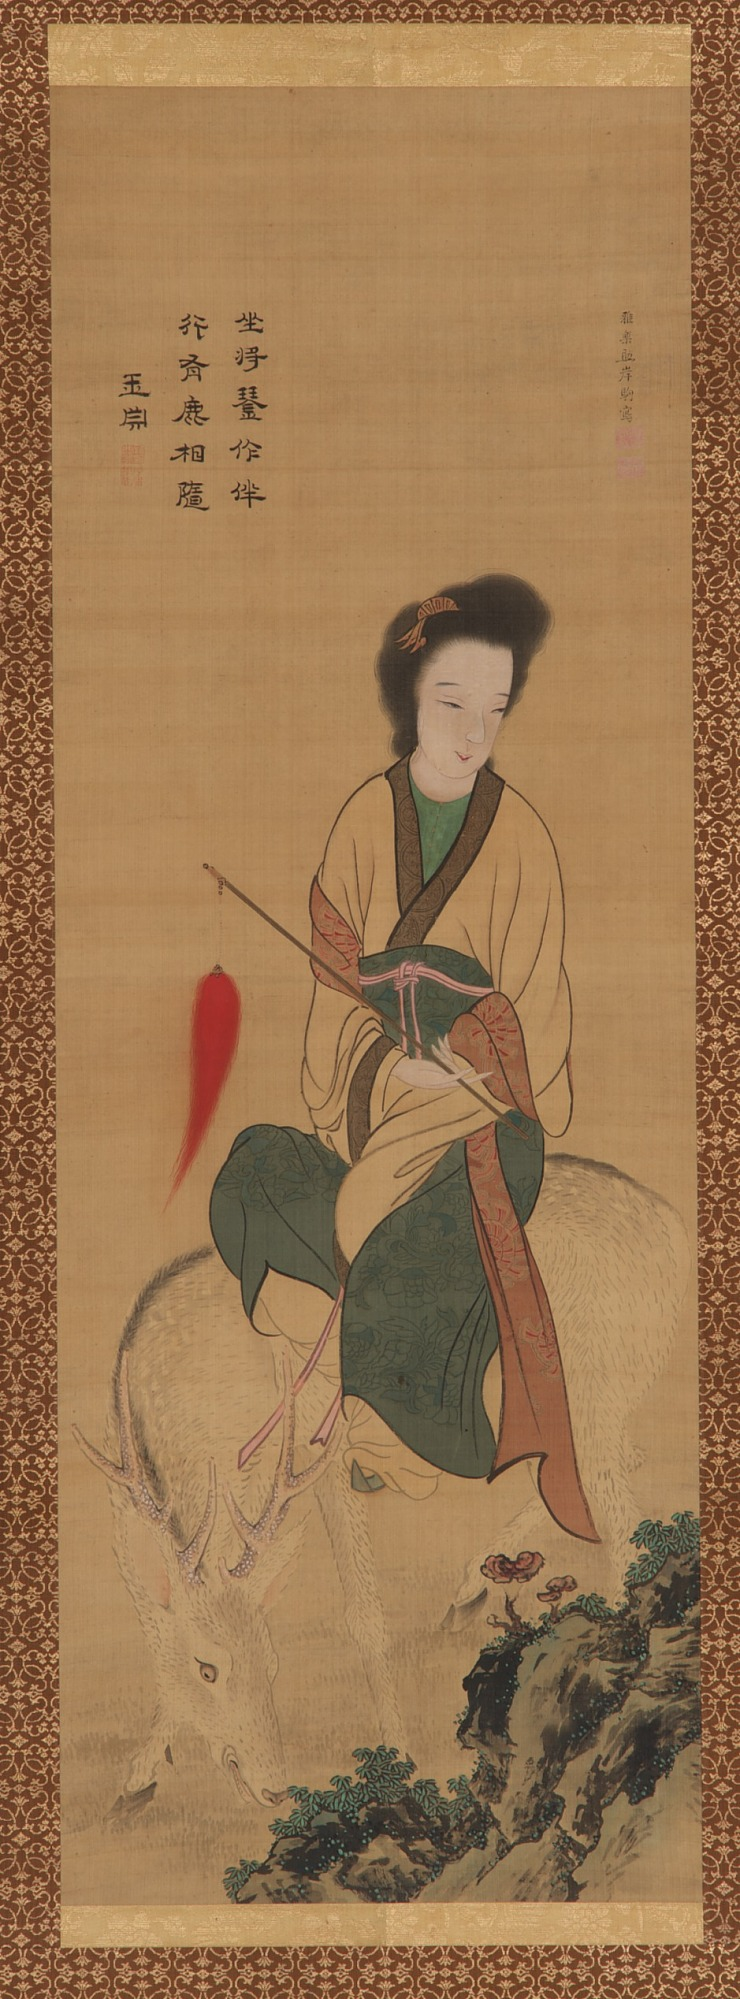 A female immortal riding on a white deer